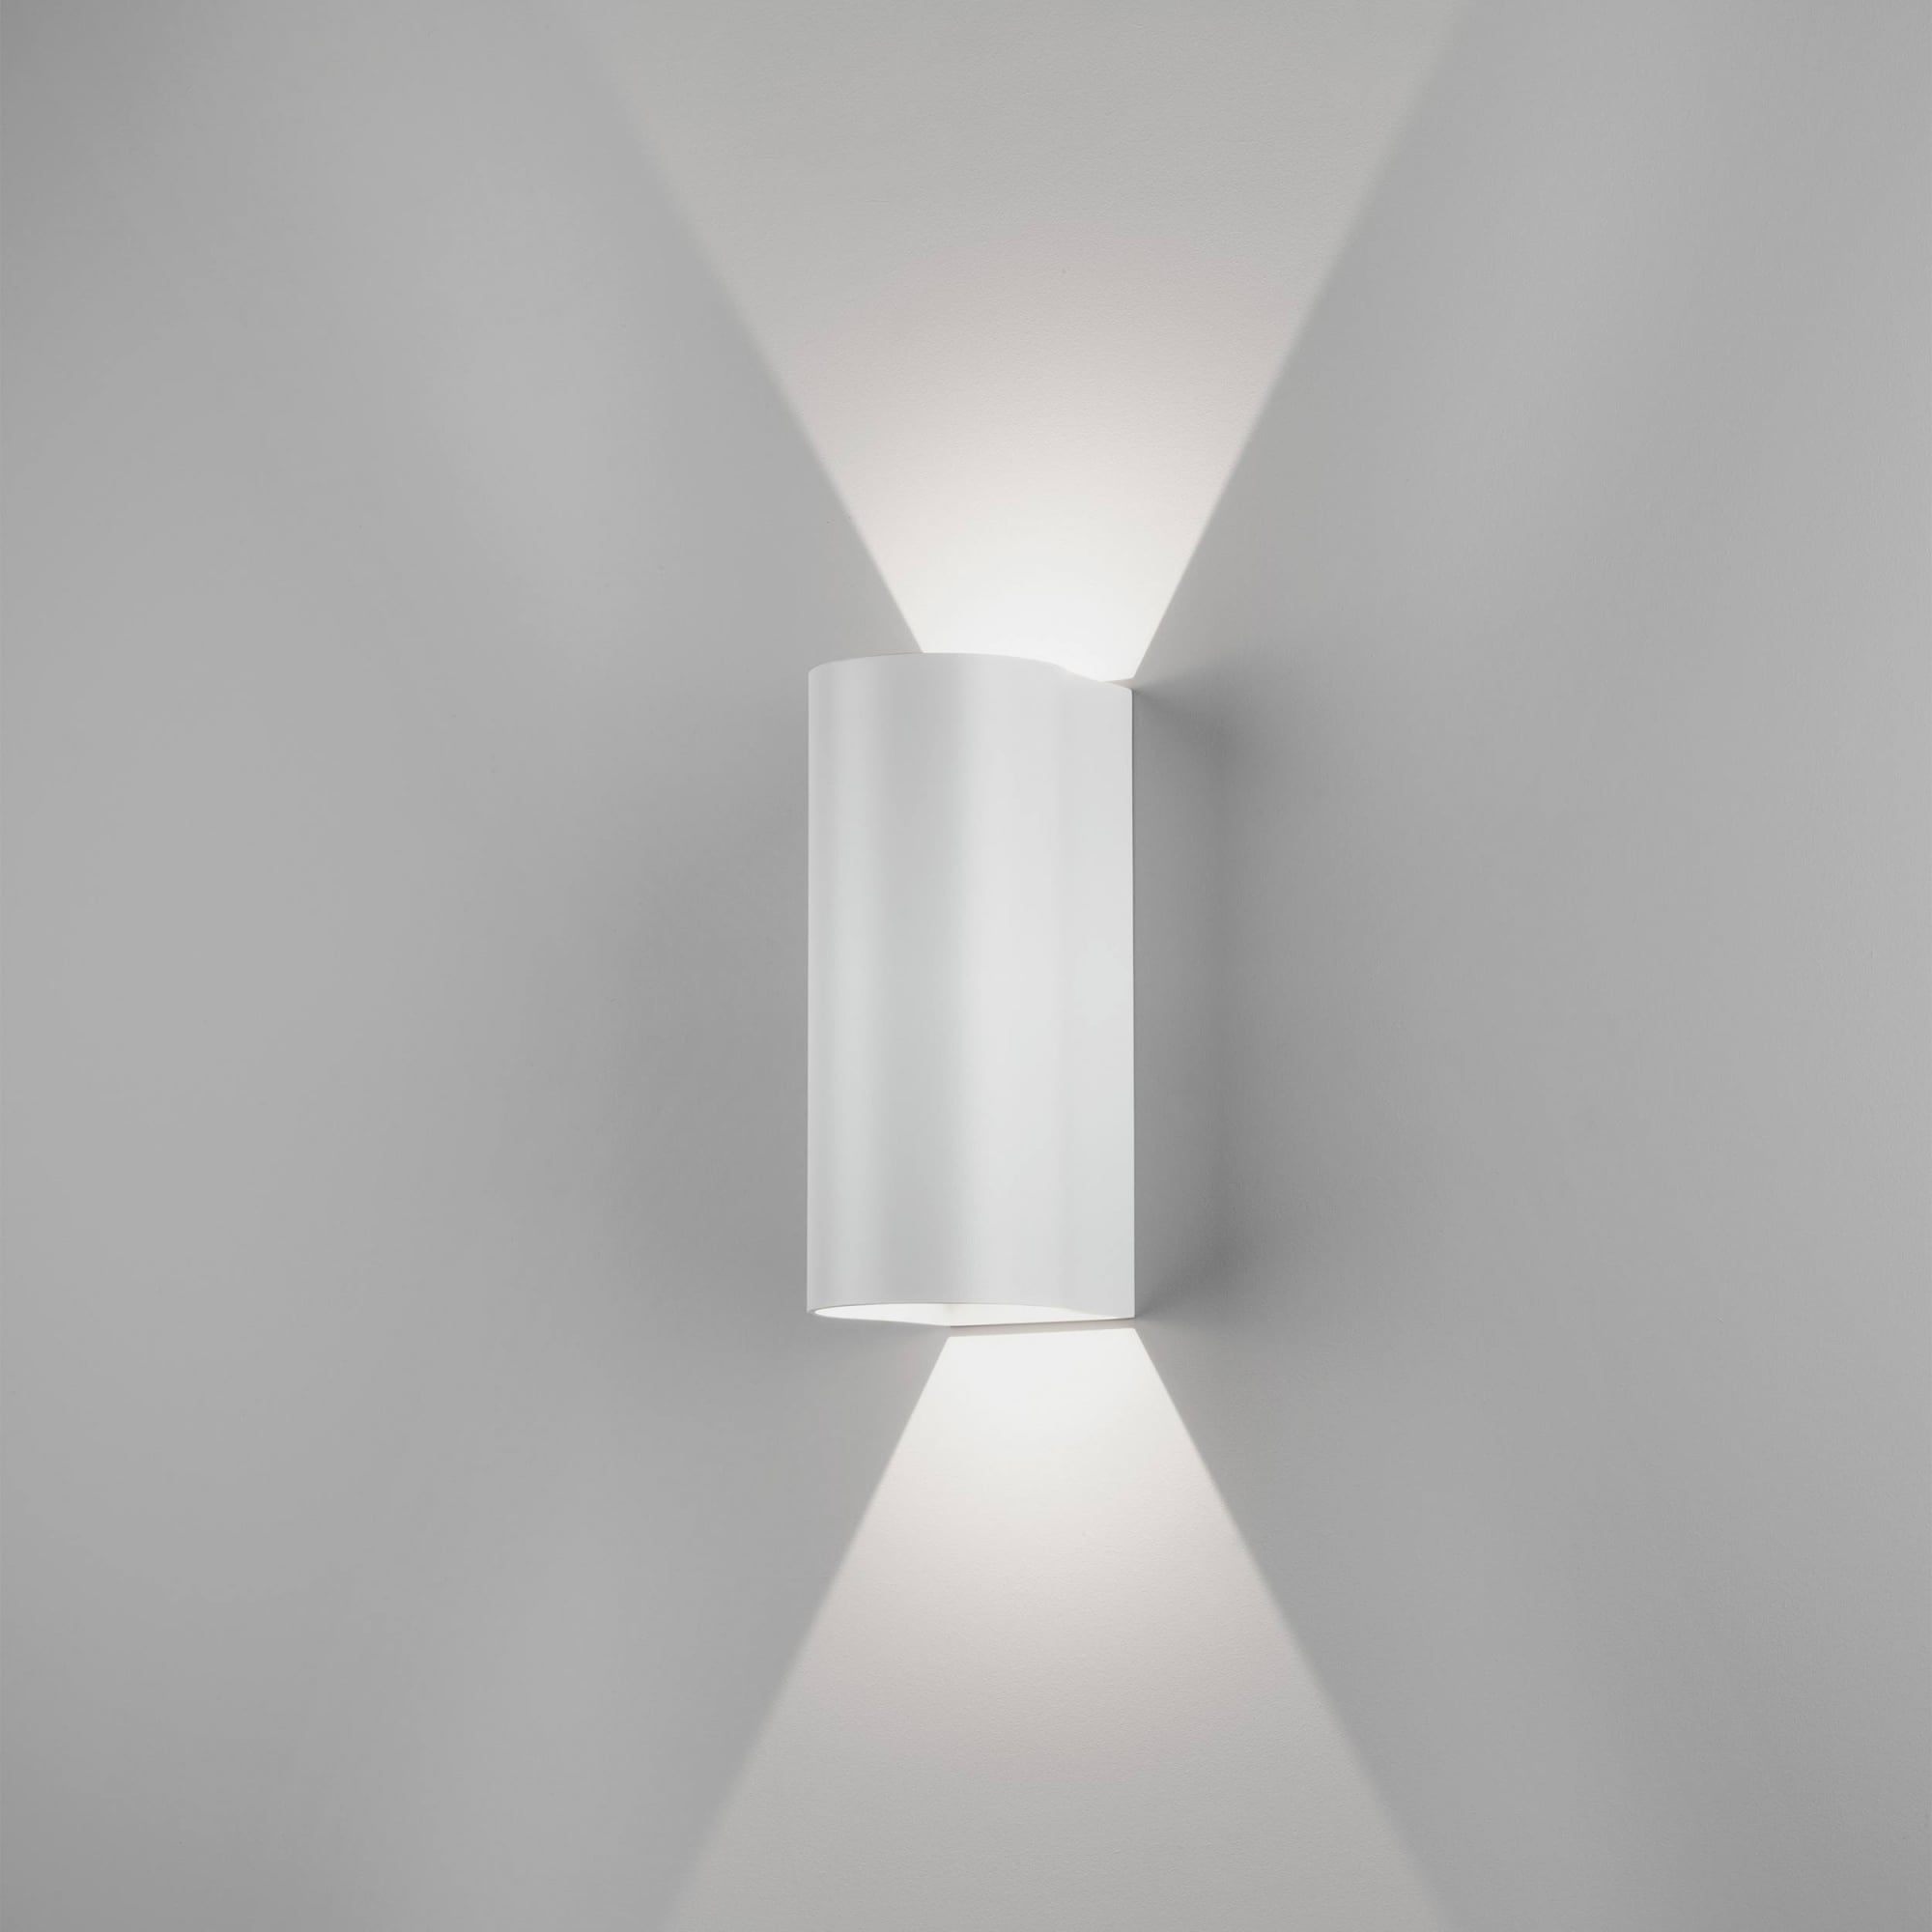 Astro Lighting Dunbar Led 255 Contemporary Outdoor Wall Light In White Finish 1384007 Lighting From The Home Lighting Centre Uk